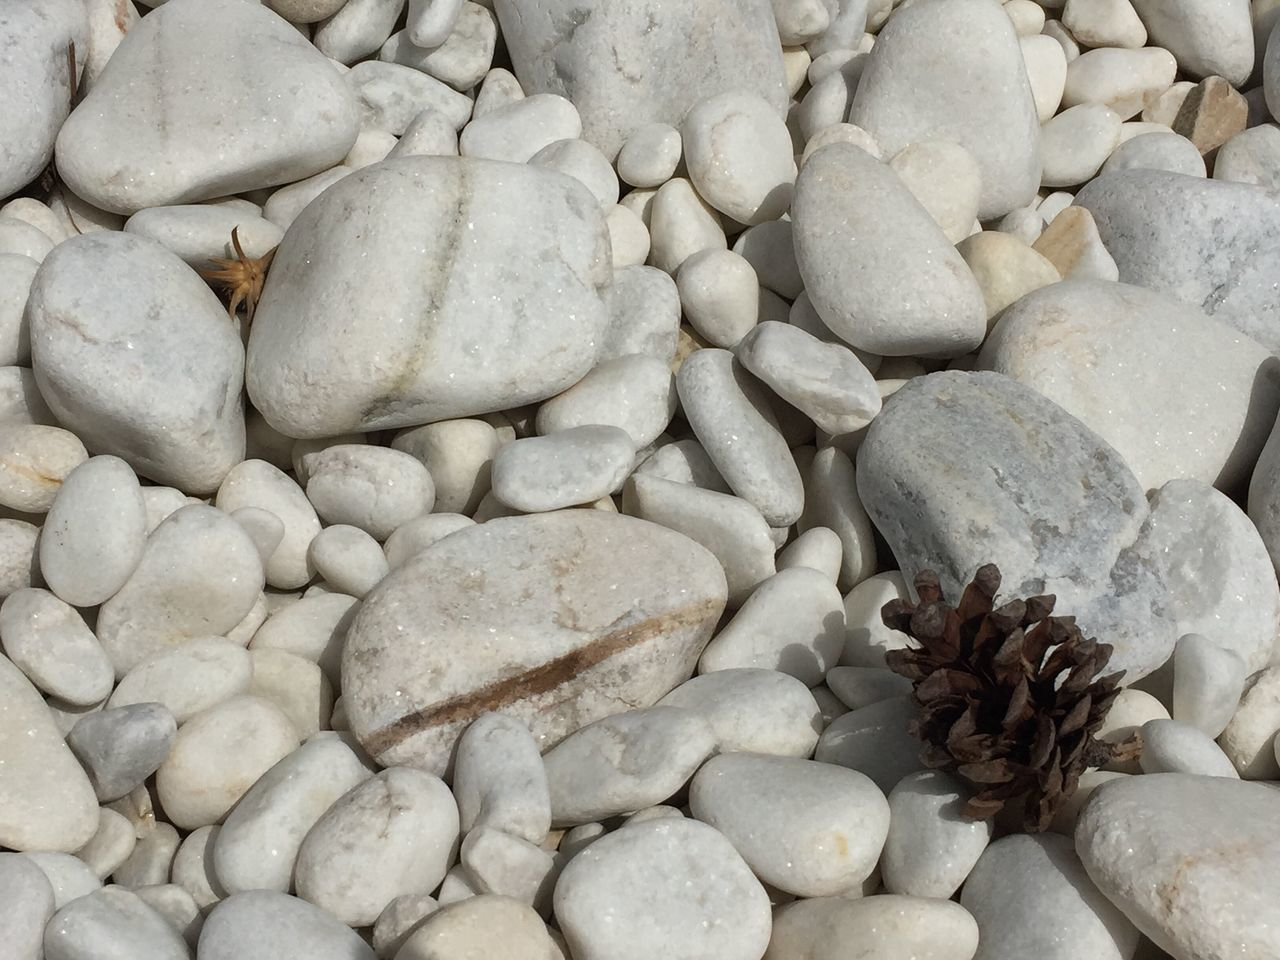 High Angle View Of Dried Pine Cone On Pebbles